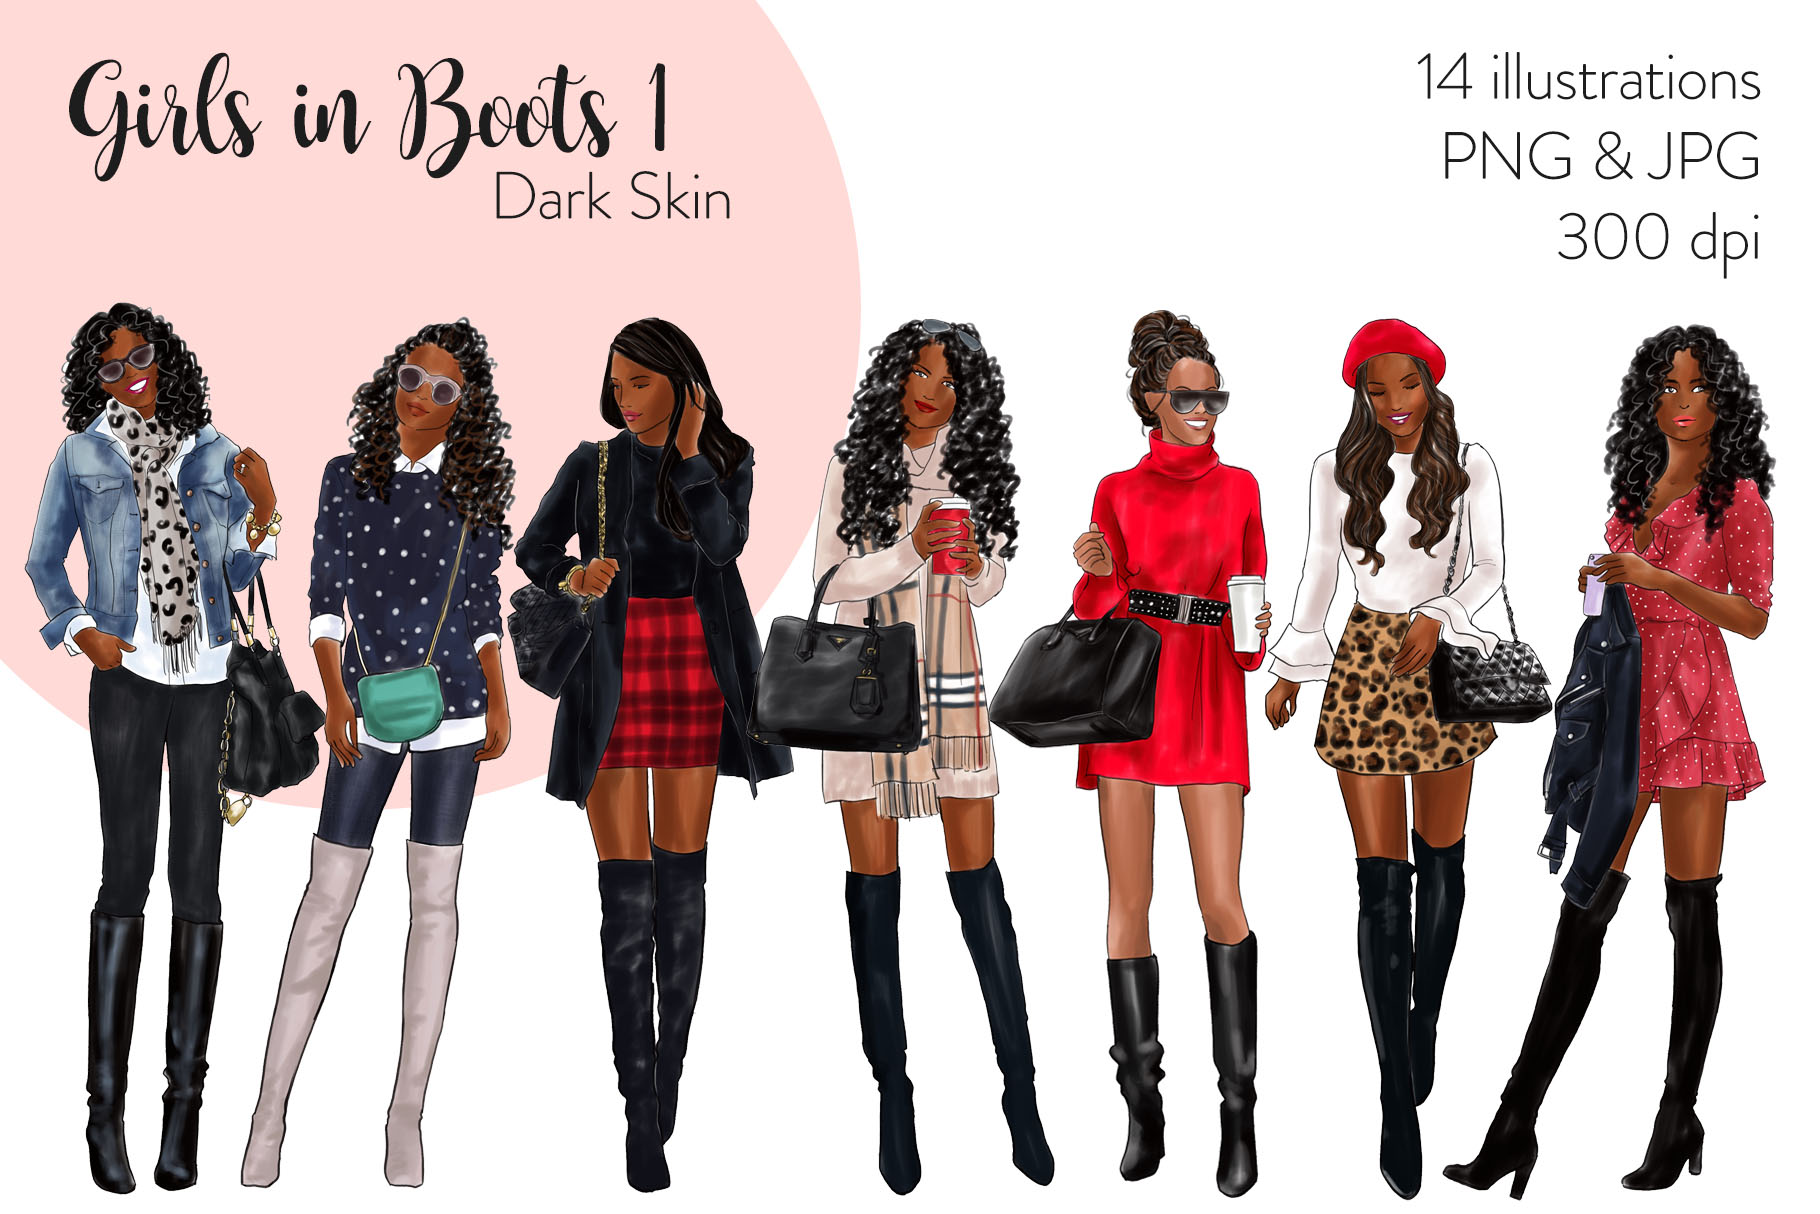 Fashion illustration clipart - Girls in Boots 1 - Dark Skin example image 1